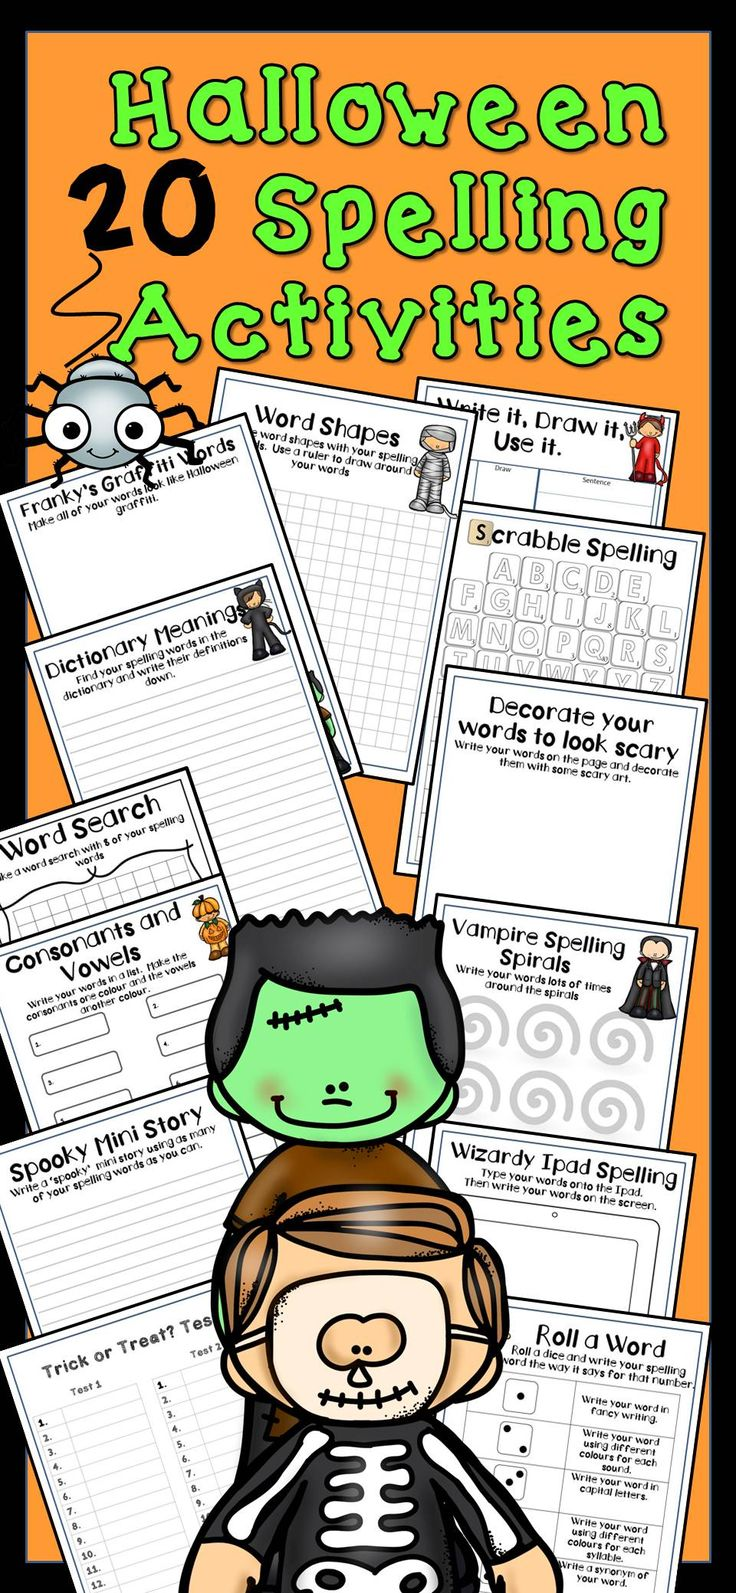 halloween spelling activities any word list halloween teaching spelling activities. Black Bedroom Furniture Sets. Home Design Ideas